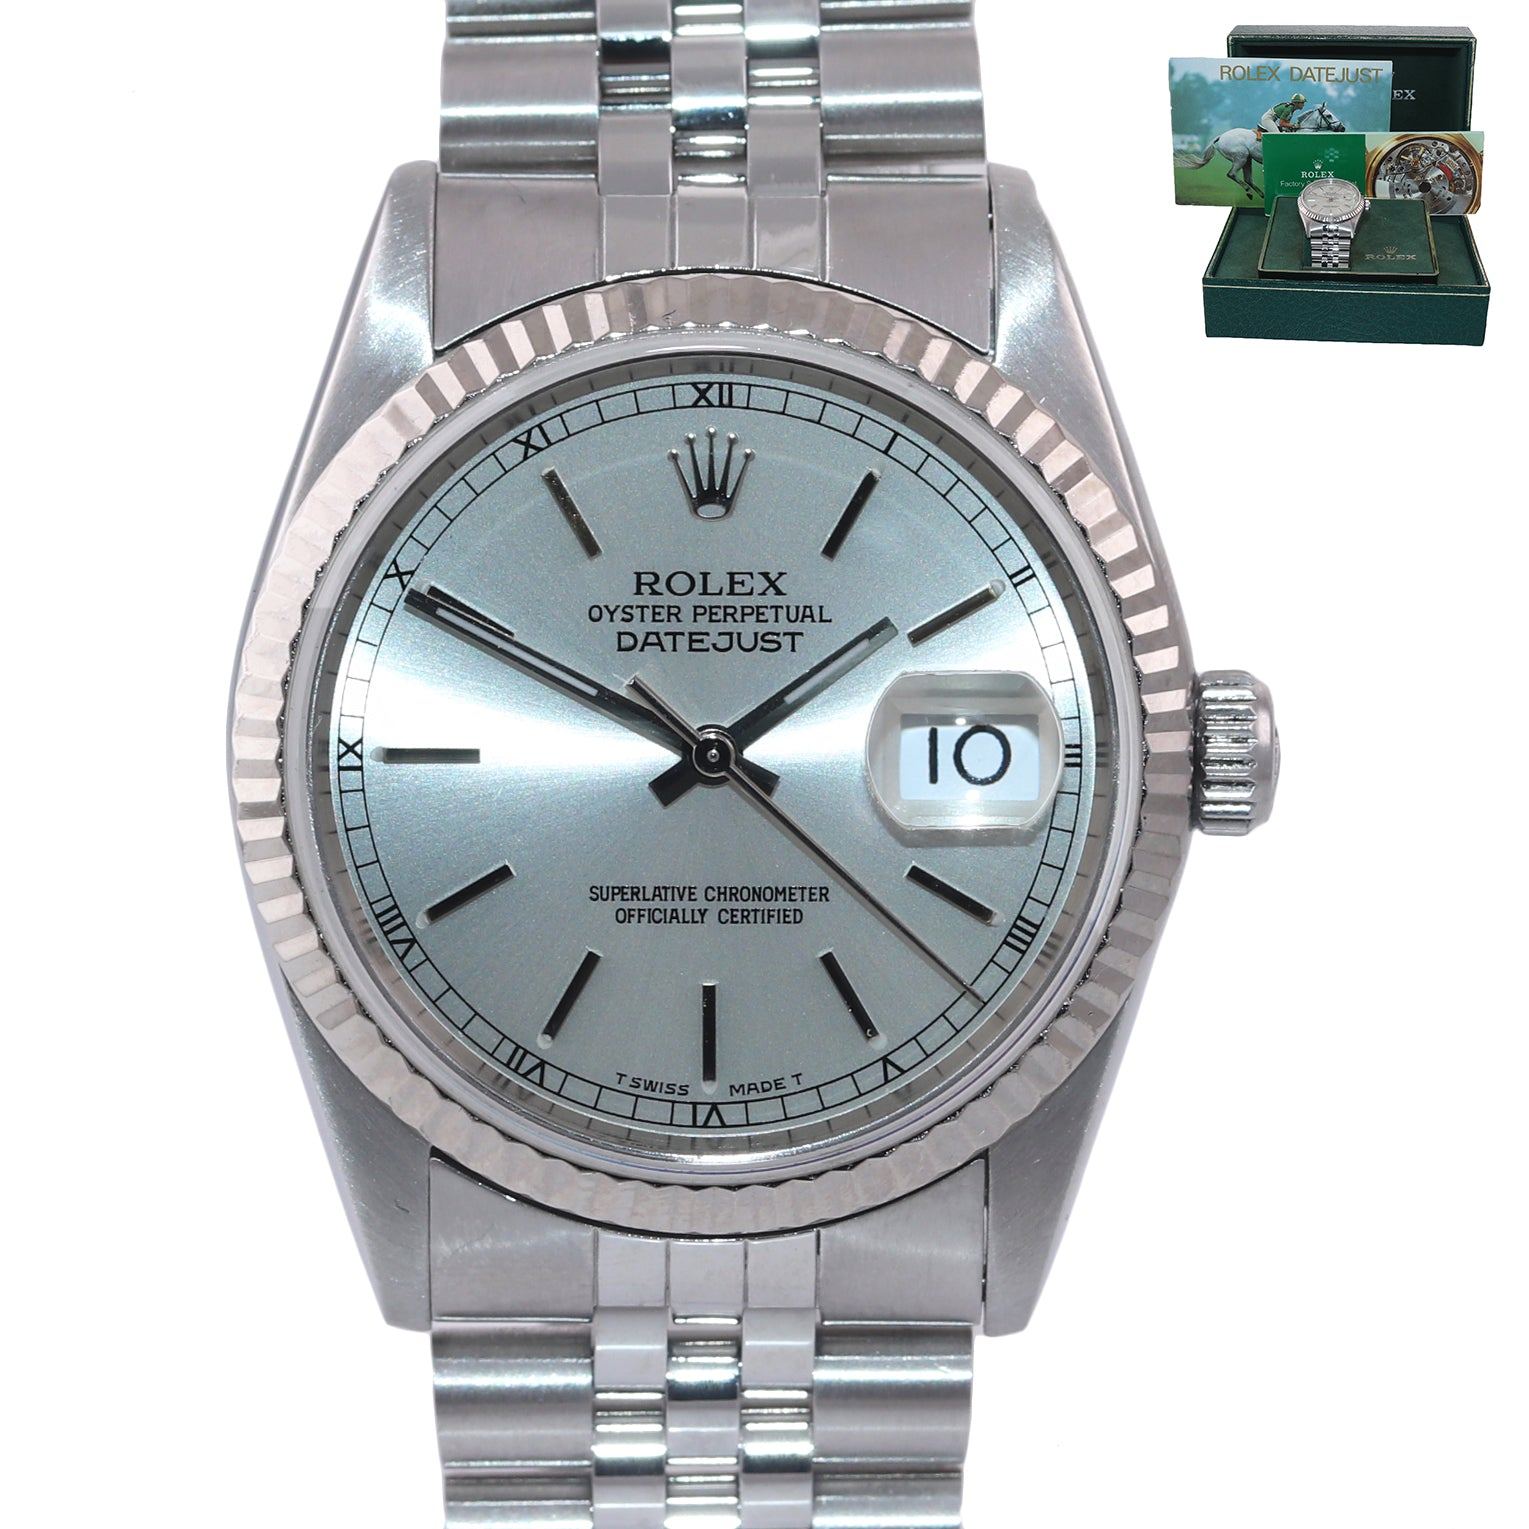 PAPERS Rolex DateJust 36mm 16234 Steel Silver Stick Jubilee 18k Fluted Watch